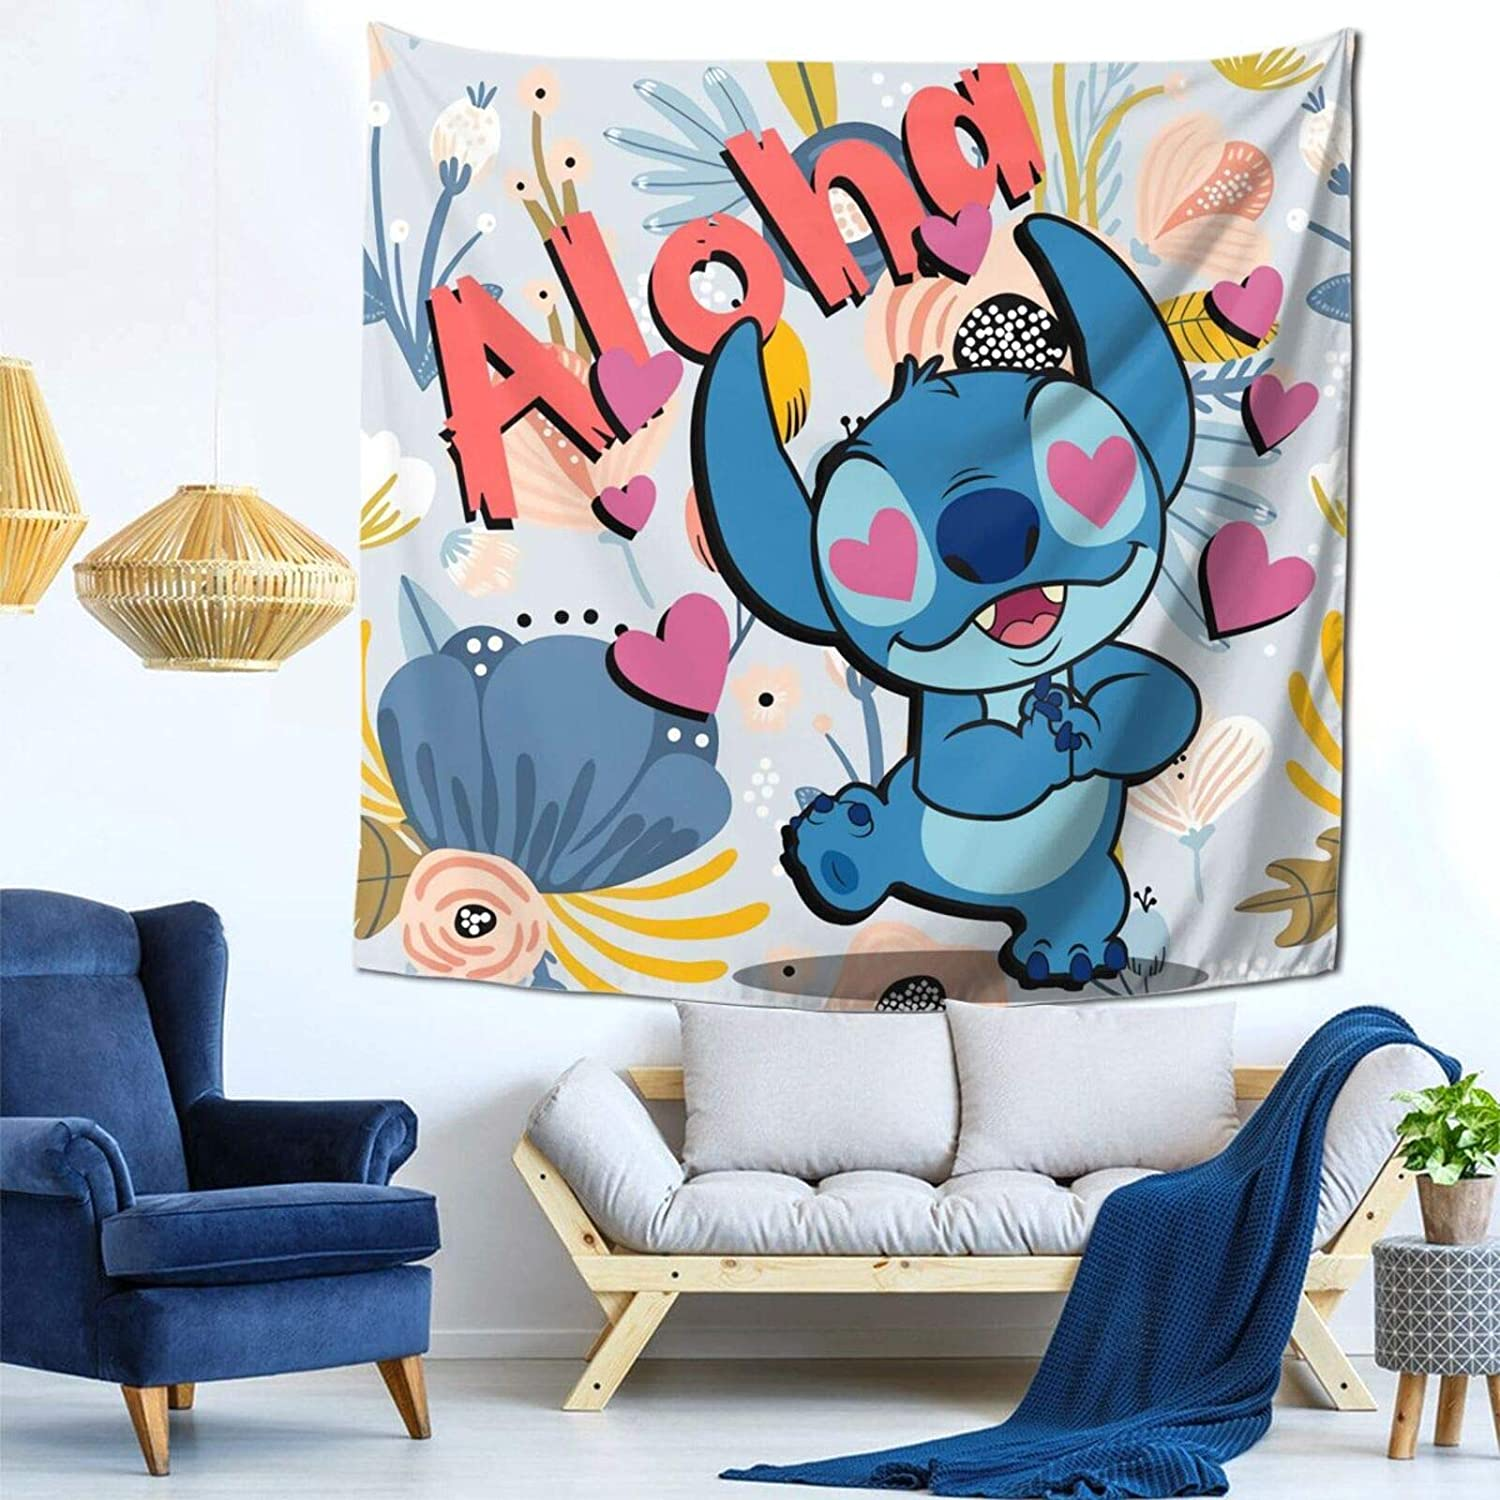 Luxury Tapestry, Li-Lo & Sti-Tch Baby Anime Bedding Wall Hanging Art Decor, Soft Throw Blankets For Hotel Living Room Decoration, 59x59 Inch